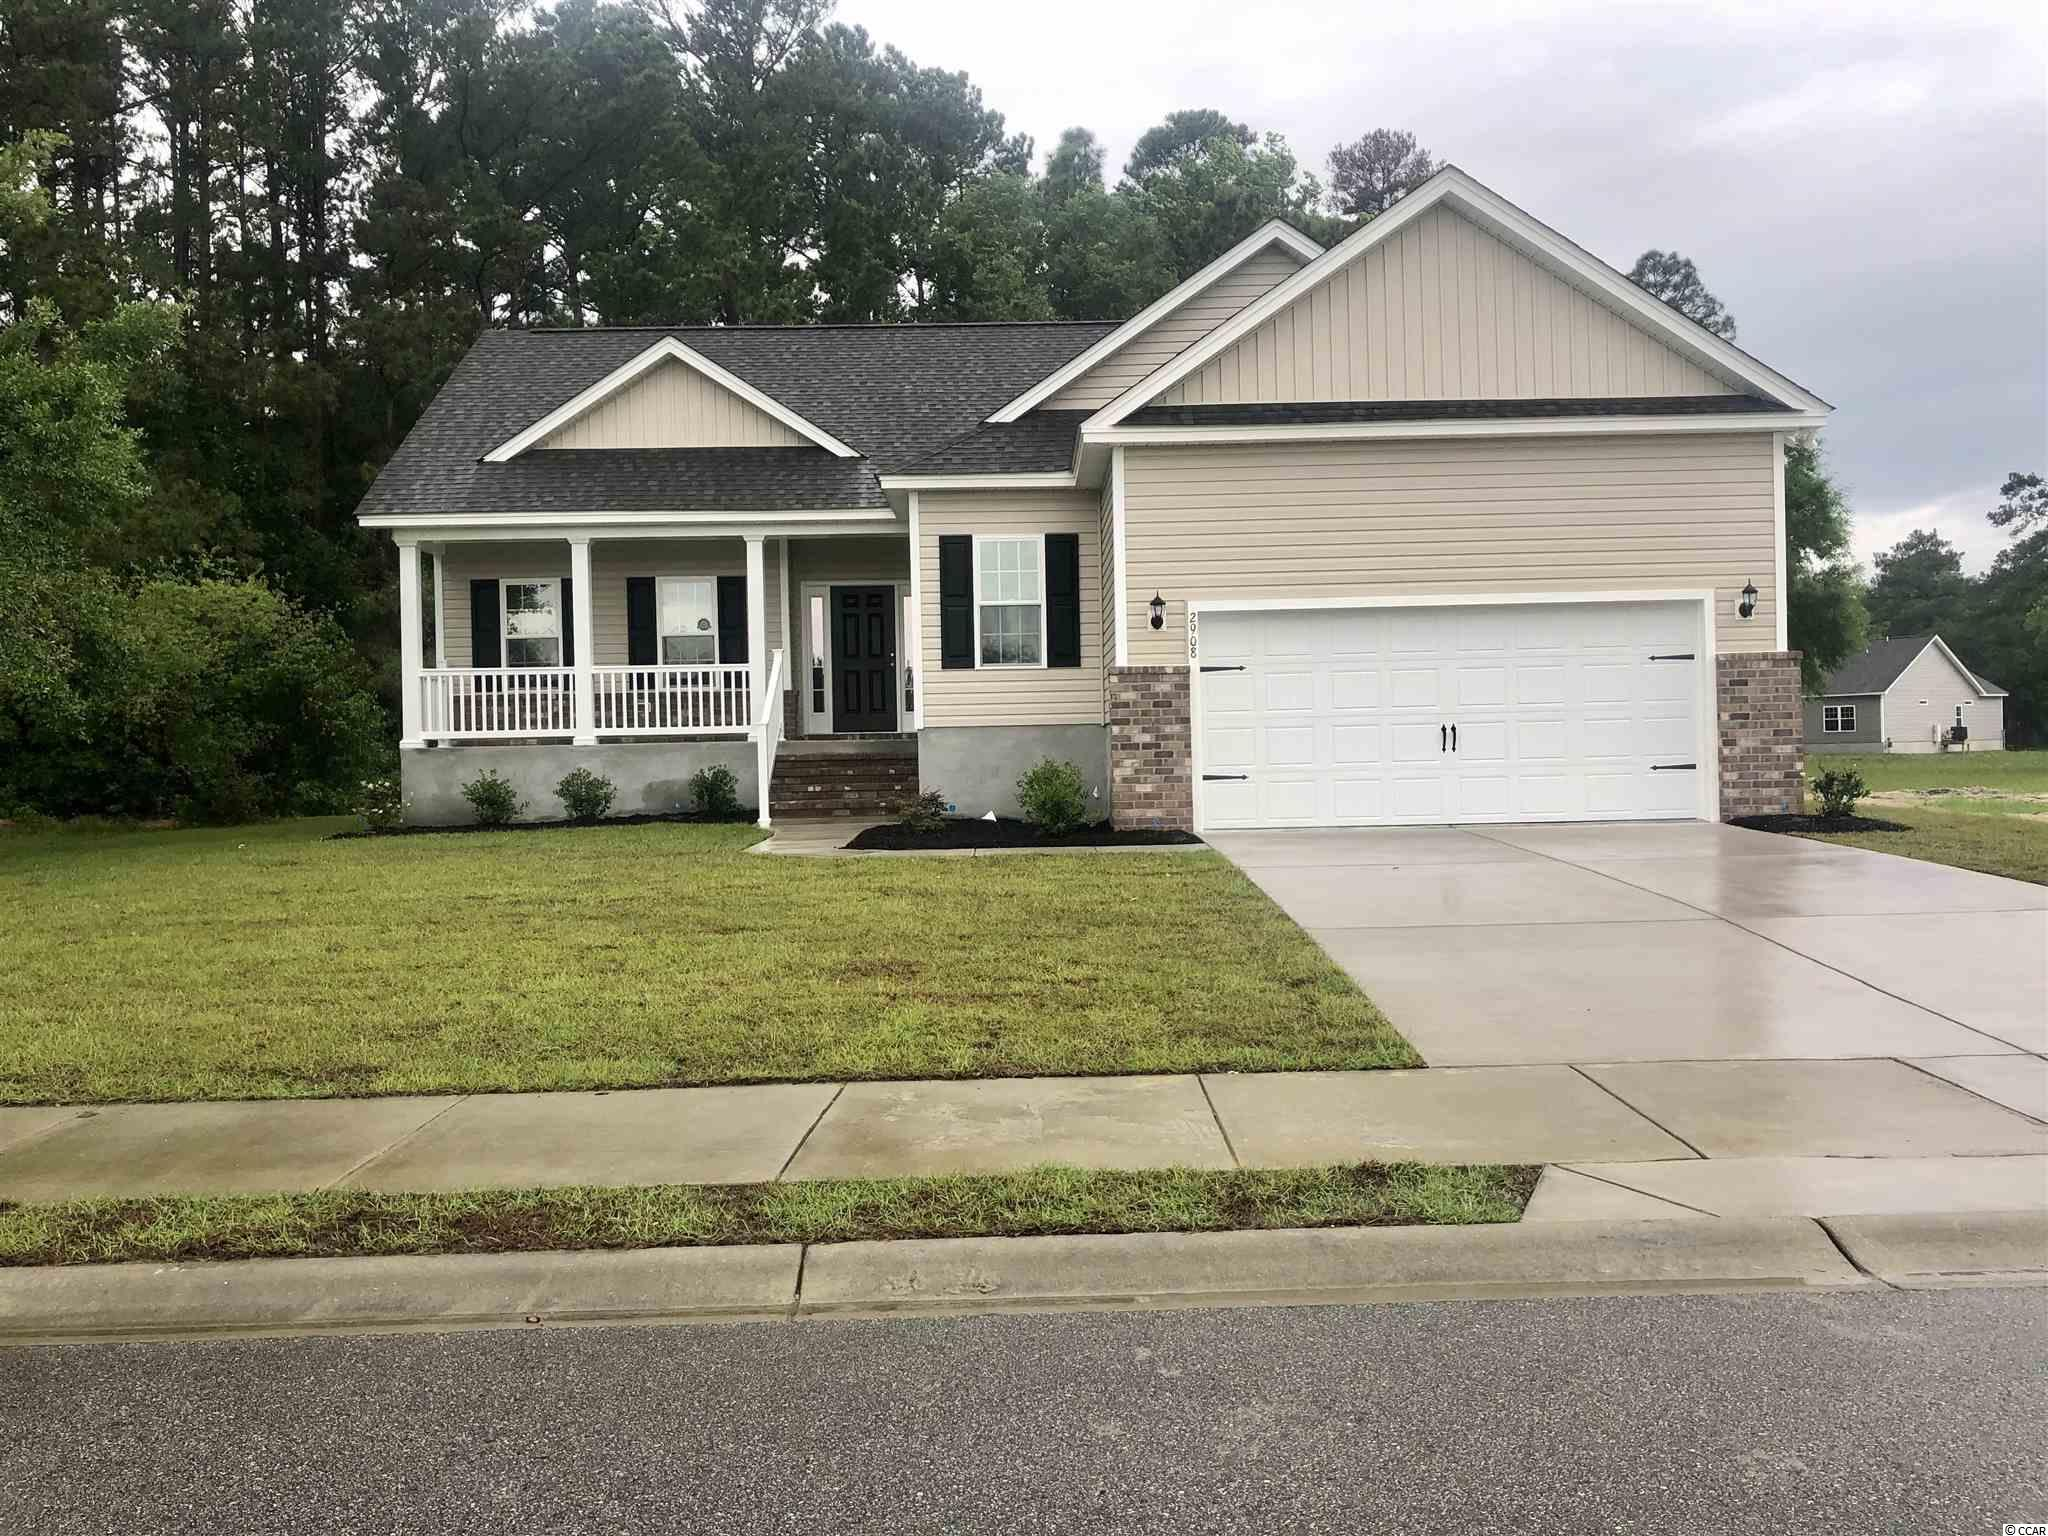 The Dogwood Model is a one level home with 3 BR 2 Bath, 1500+/- heated sq. ft. plus a 2-car garage with an open floor plan that features a spacious and comfortable kitchen overlooking the living room. This home feature includes but are not limited to: Open Kitchen with Large pantry, Stainless Steel Appliances,  5 ft. walk-in shower -  cultured marble vanity top in 2nd bathroom. Pictures are of a similar plan model home and are for illustration purposes only. All of the homes in Harbor Club come standard with the efficiency and luxury of Natural Gas. Enjoy Gas Heat, Natural Gas Range and a Rinnai Tank-less water heater. Beverly homes offers home customization and floor plan changes. Harbor Club is a premier private community located along Winyah Bay and the Intracoastal Waterway, near Historic Georgetown, SC. Community amenities include a day dock, Boat Ramp, Bay House, sidewalks and walking trails that wind throughout the community. A secured RV/ Boat storage area is available for property owners. Huge oaks and beautiful tidal saltwater ponds make this one of the premier communities in the area. Come experience the beautiful and sweet life that the low country of South Carolina and Harbor Club have to offer! Beverly Homes is a equal opportunity Builder.